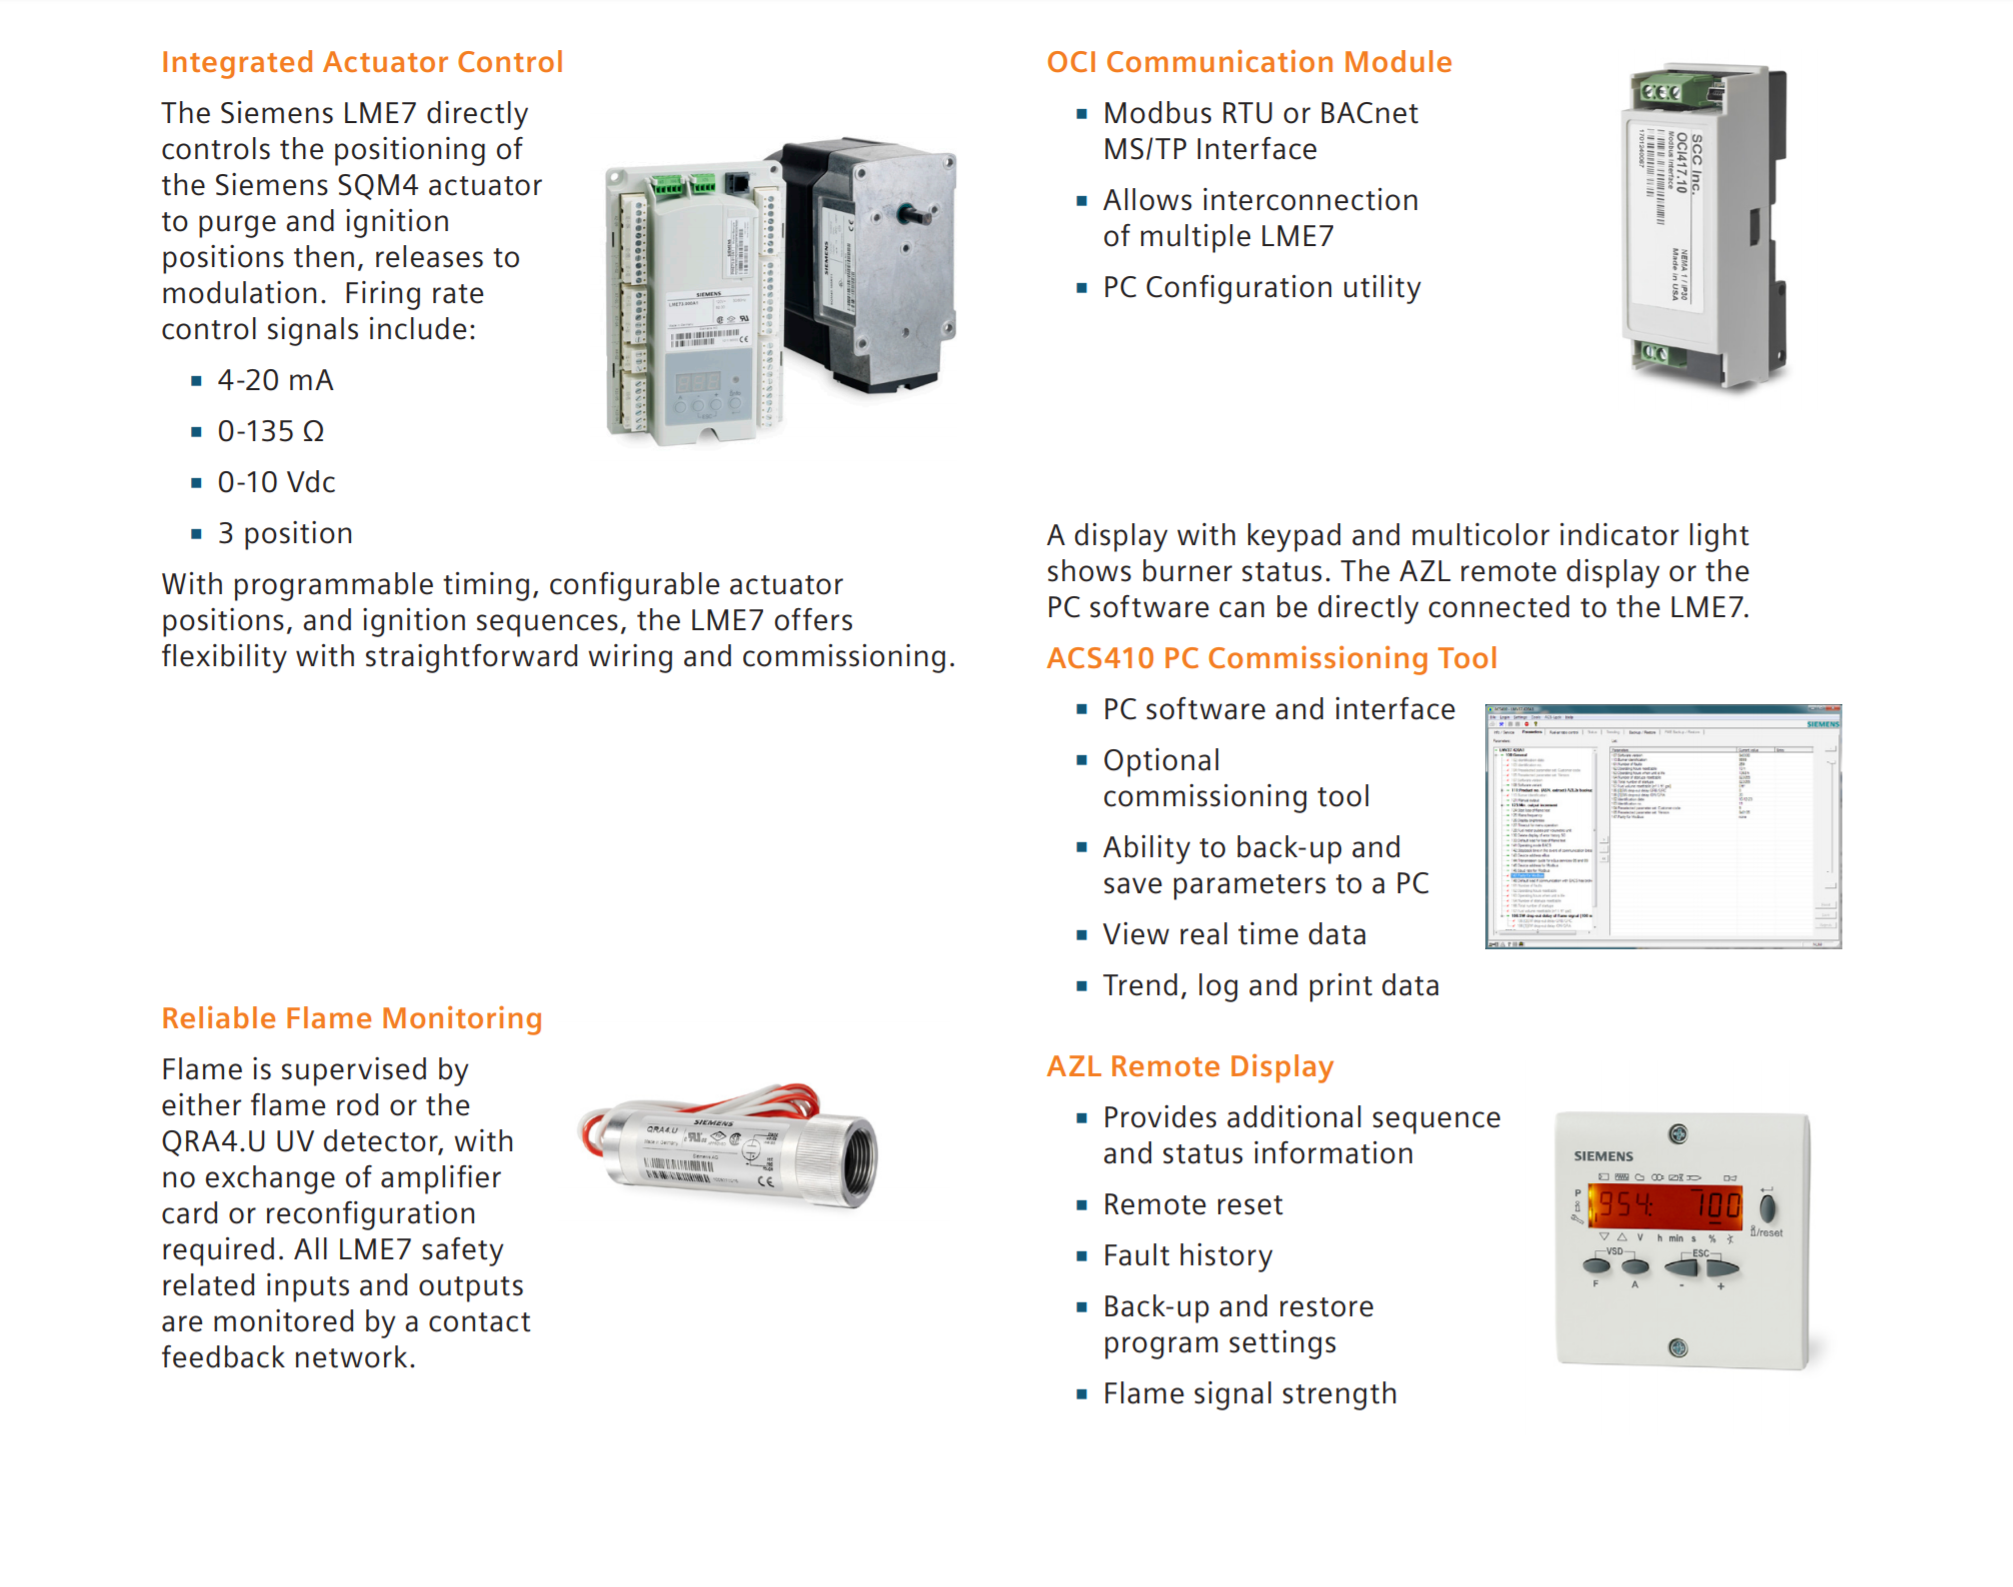 Siemens Bacnet Mstp Wiring Electrical Diagrams Diagram Lme7 Flame Safeguard Marshall W Nelson And Associates Inc